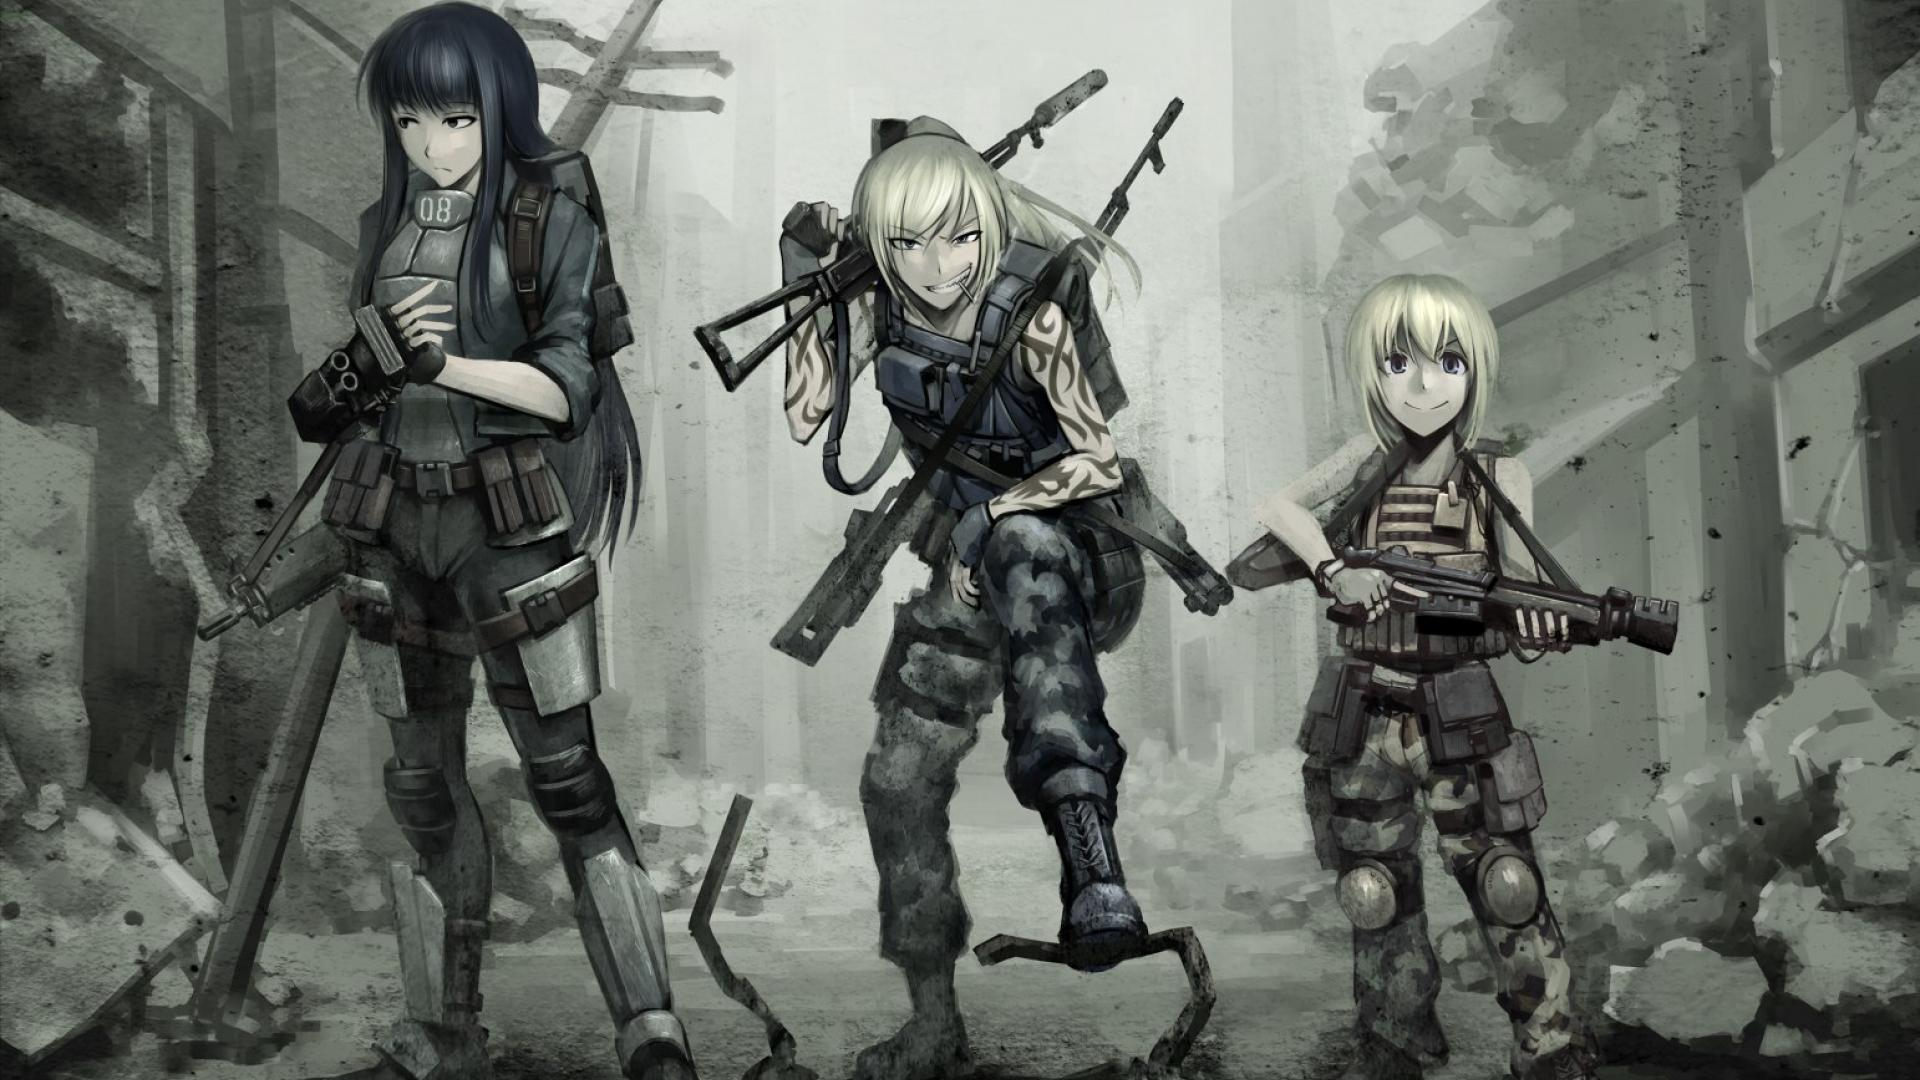 Anime girls with guns wallpaper 1542x988 HQ WALLPAPER   25809 1920x1080